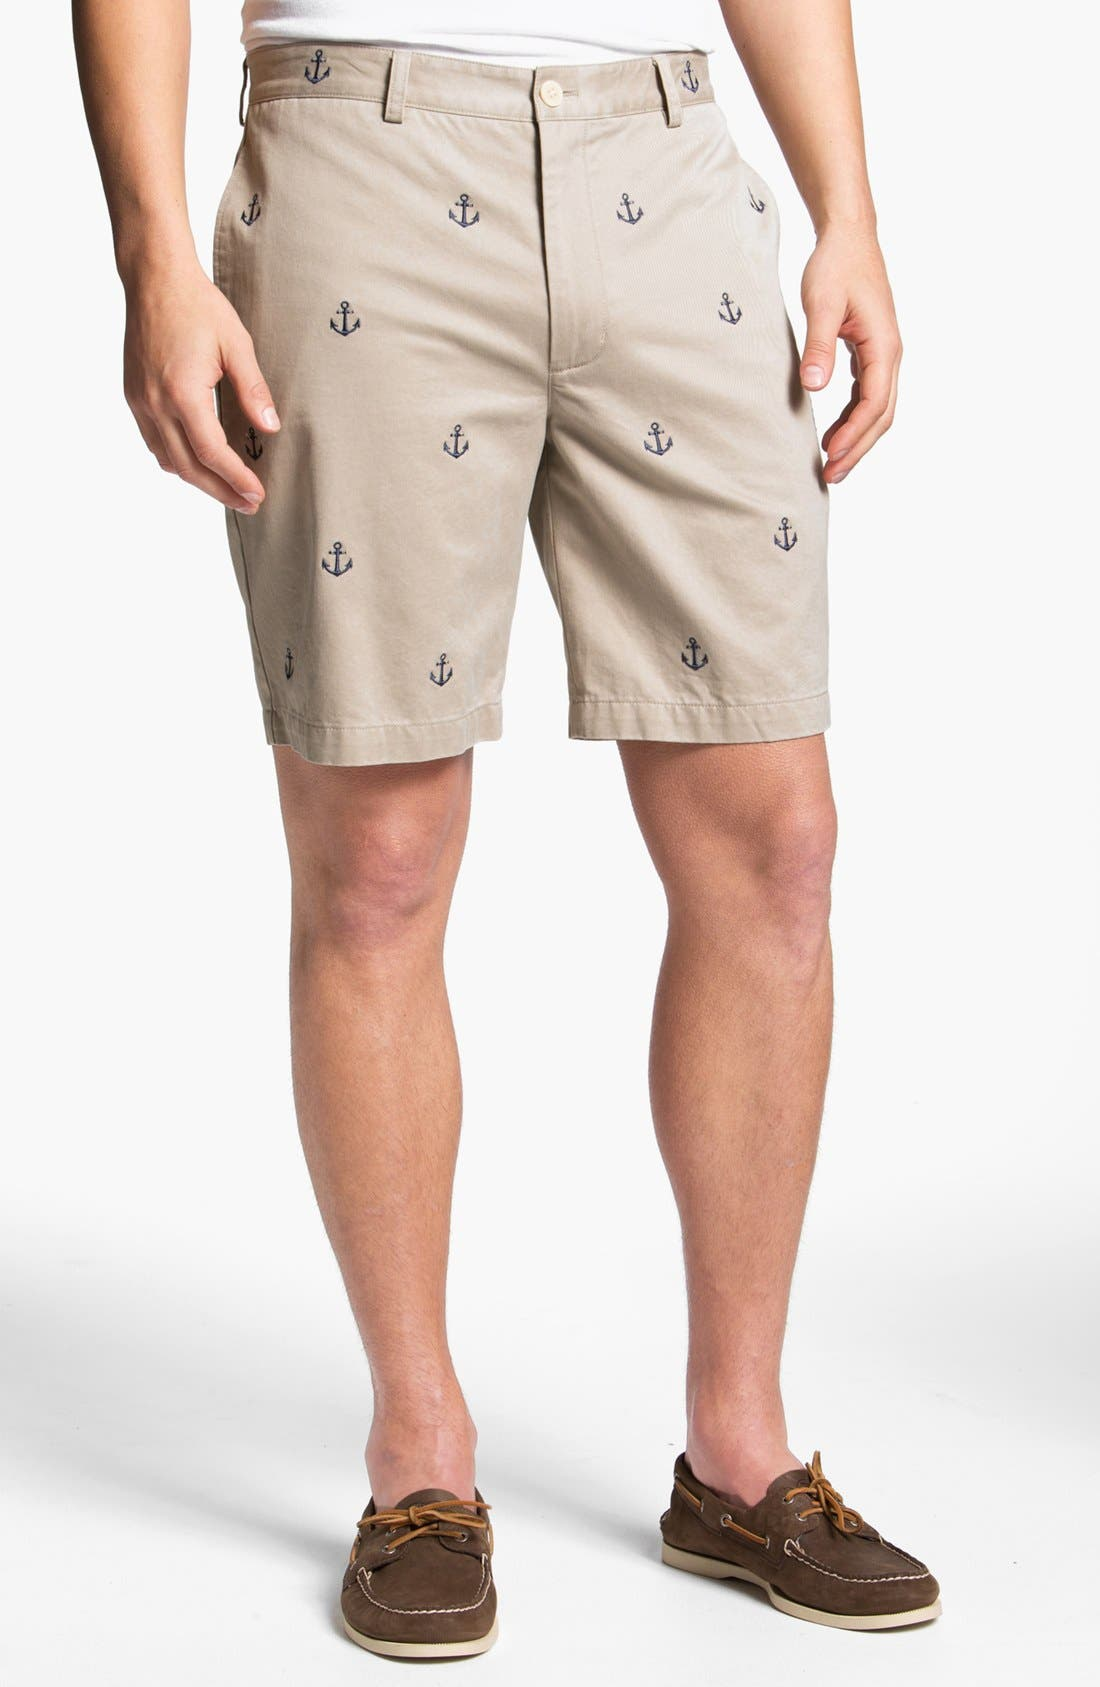 Alternate Image 1 Selected - Vineyard Vines 'Embroidered Anchor' Shorts